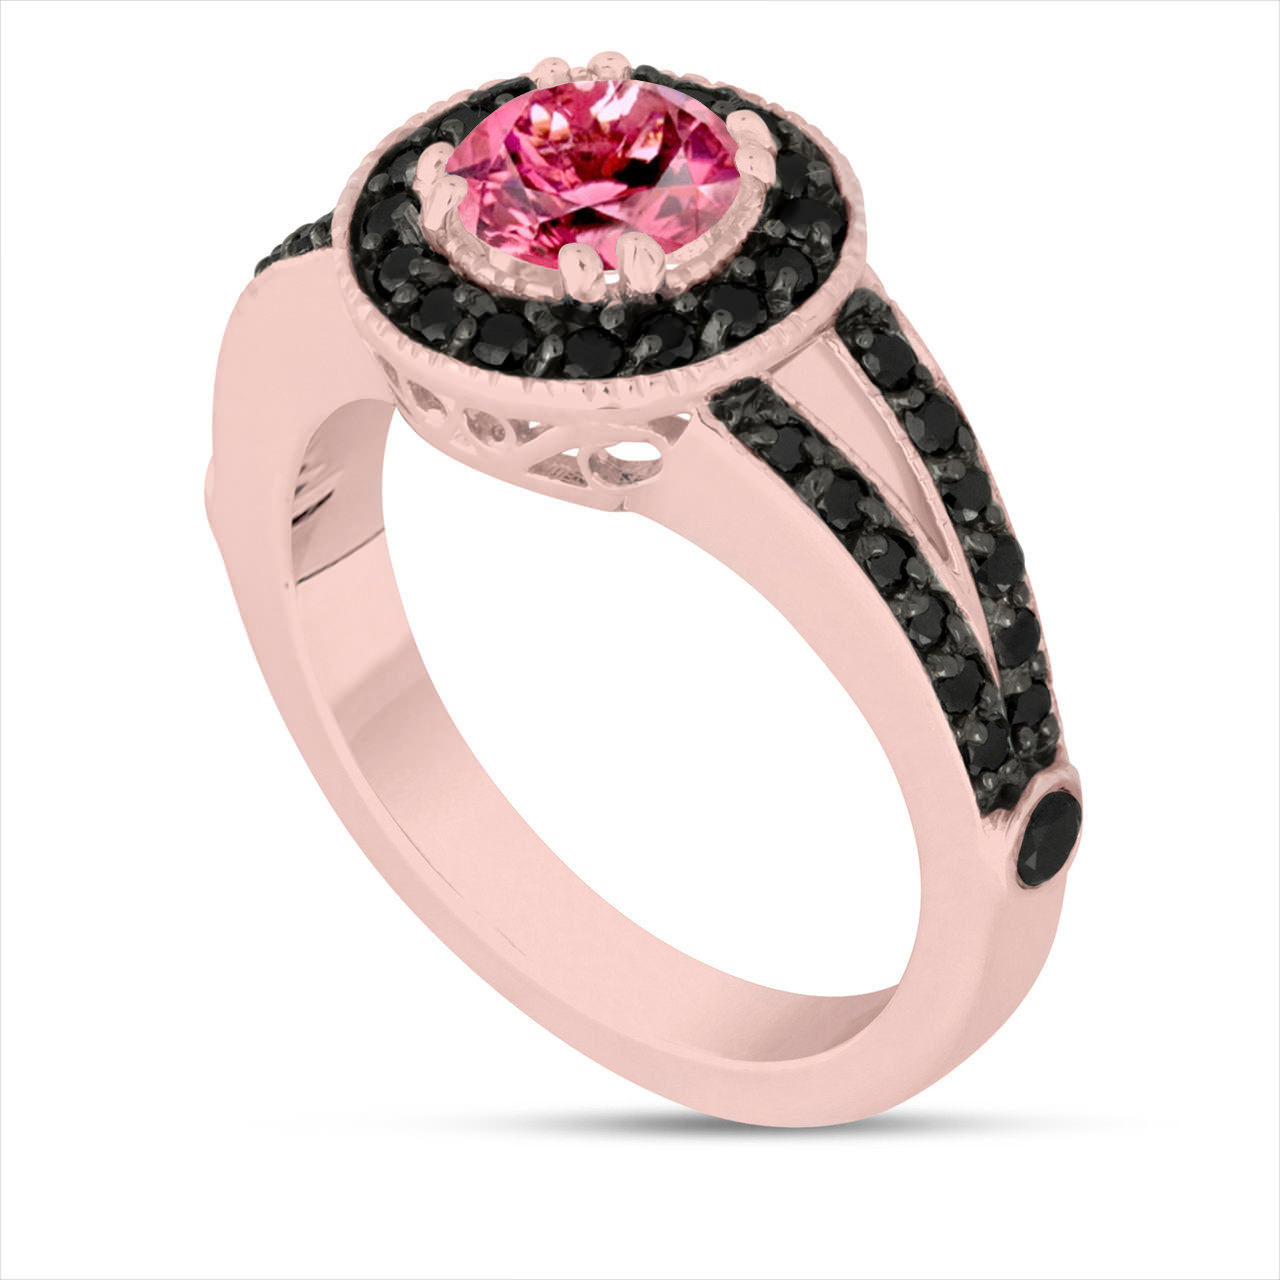 22+ Black and Pink Wedding Rings Designs, Trends | Design Trends ...